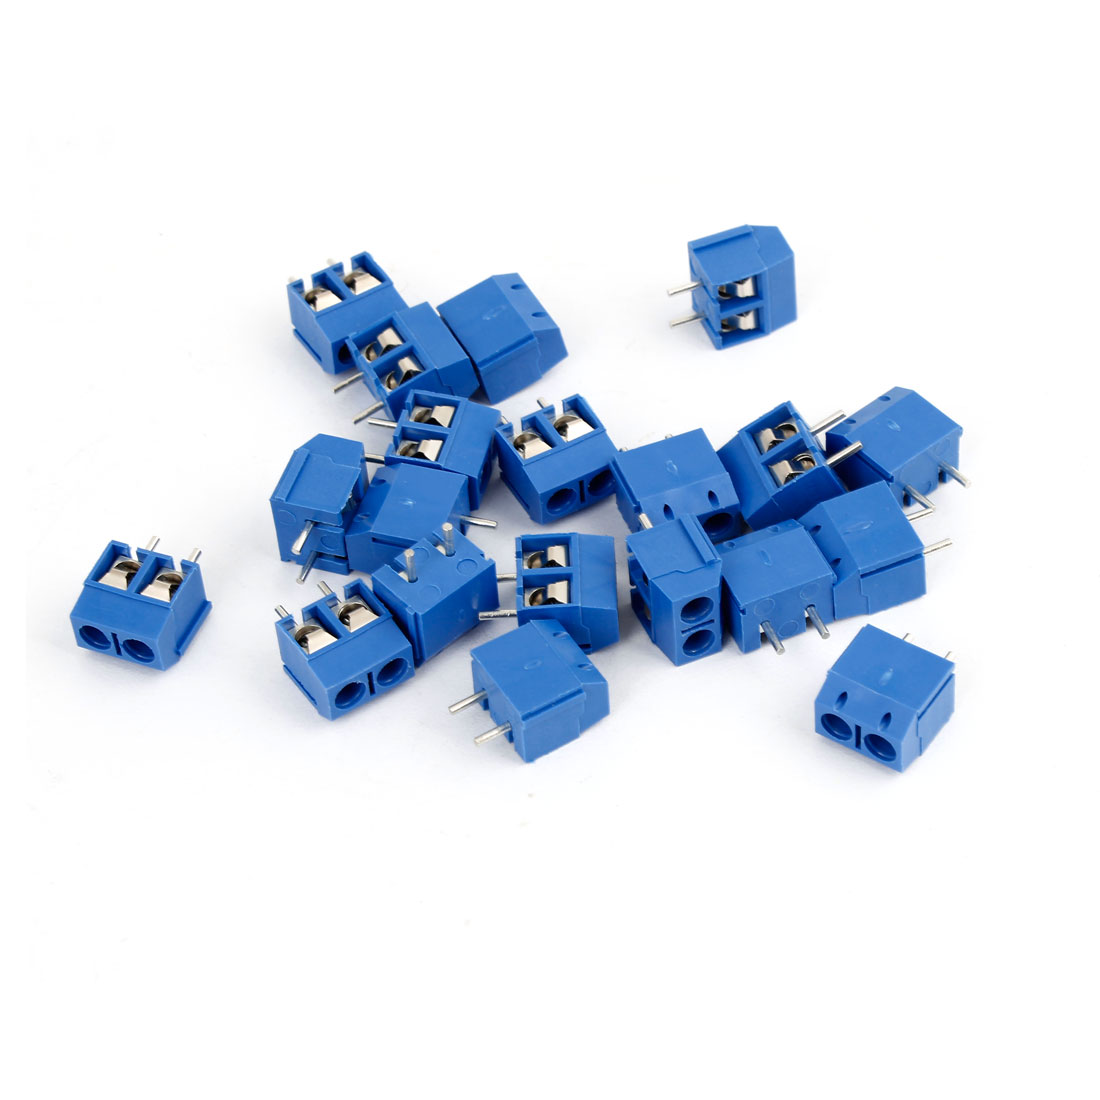 20 Pcs Blue KF301-2P 2 Position 5.0mm PCB Screw Terminal Block 250V 16A